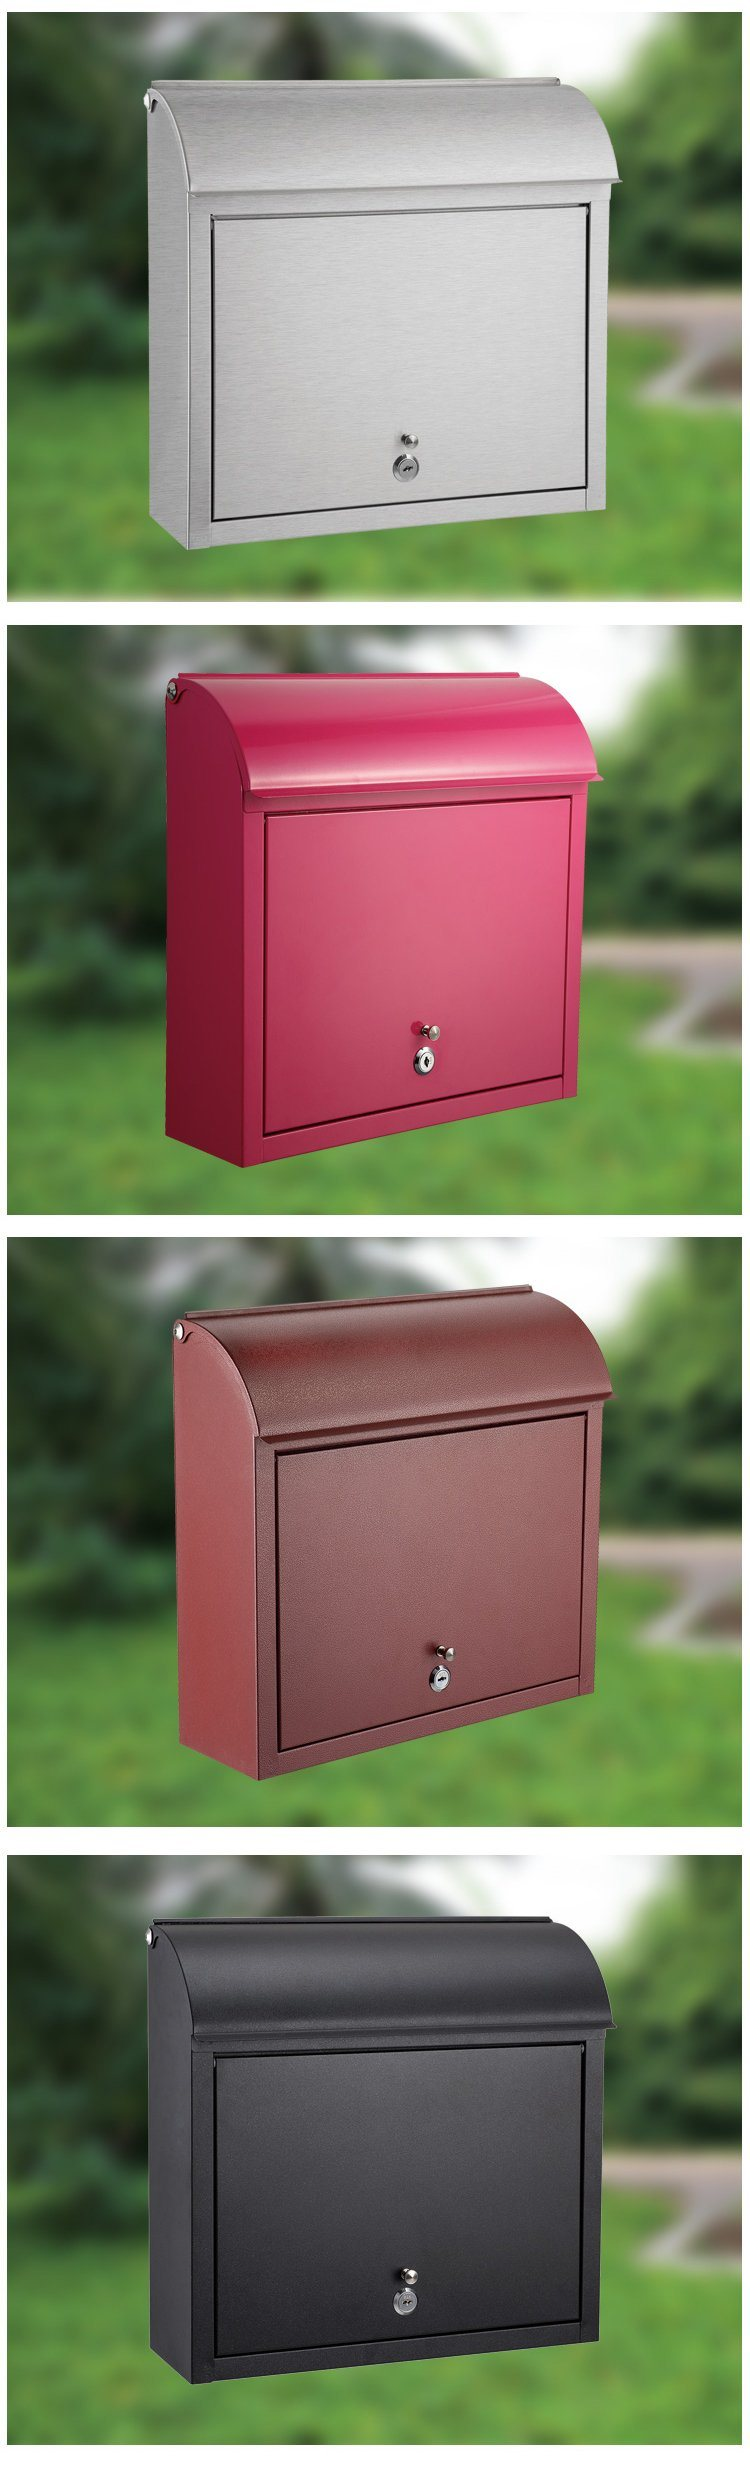 Stainless steel lockable mailbox postbox letterbox newspaper holder round square